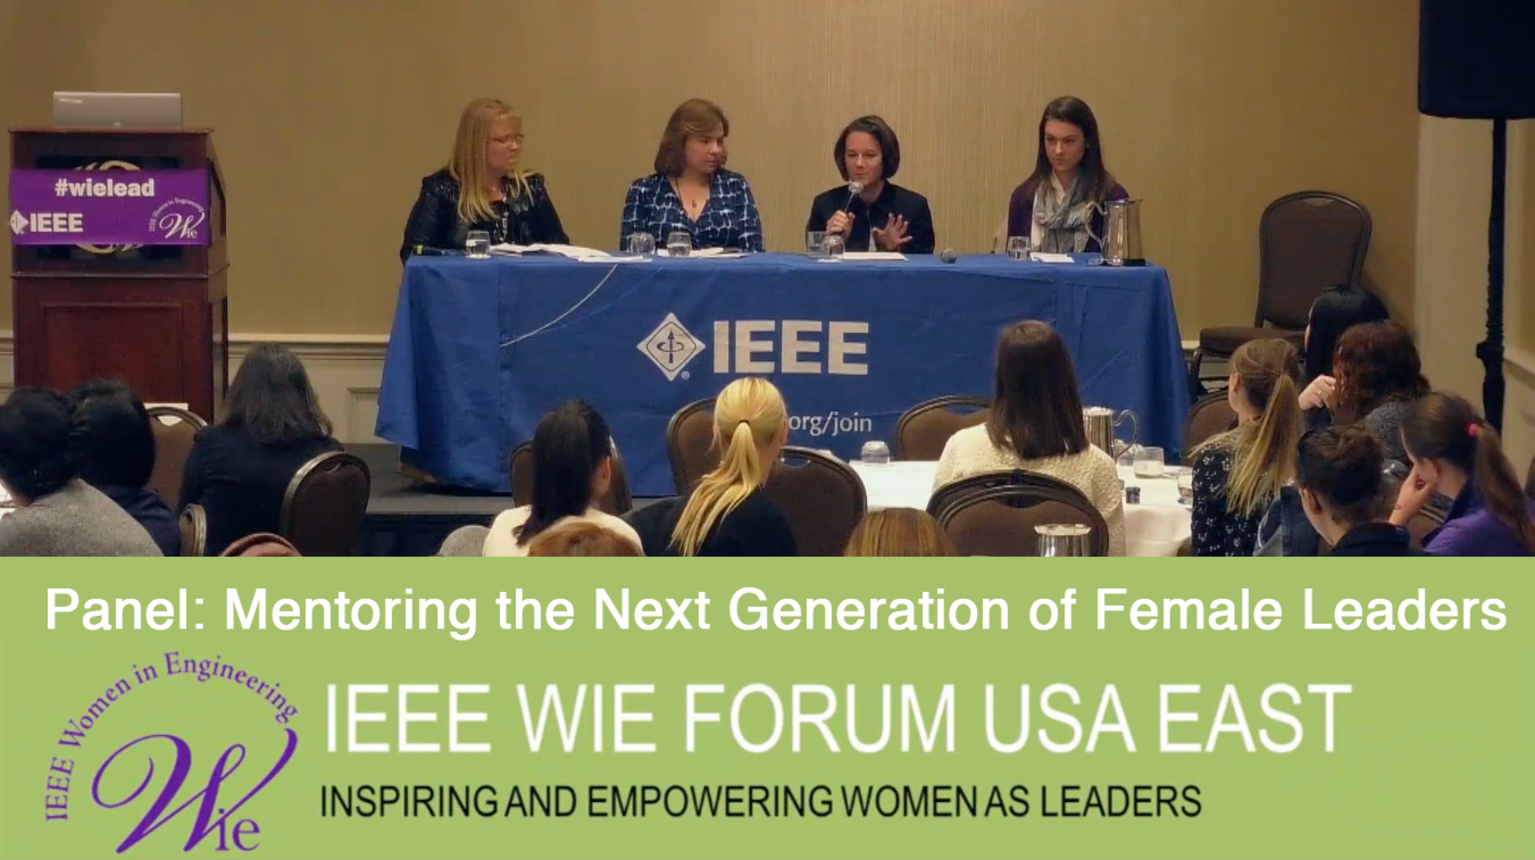 Panel: Mentoring the Next Generation of Female Leaders - WIE Forum East 2017